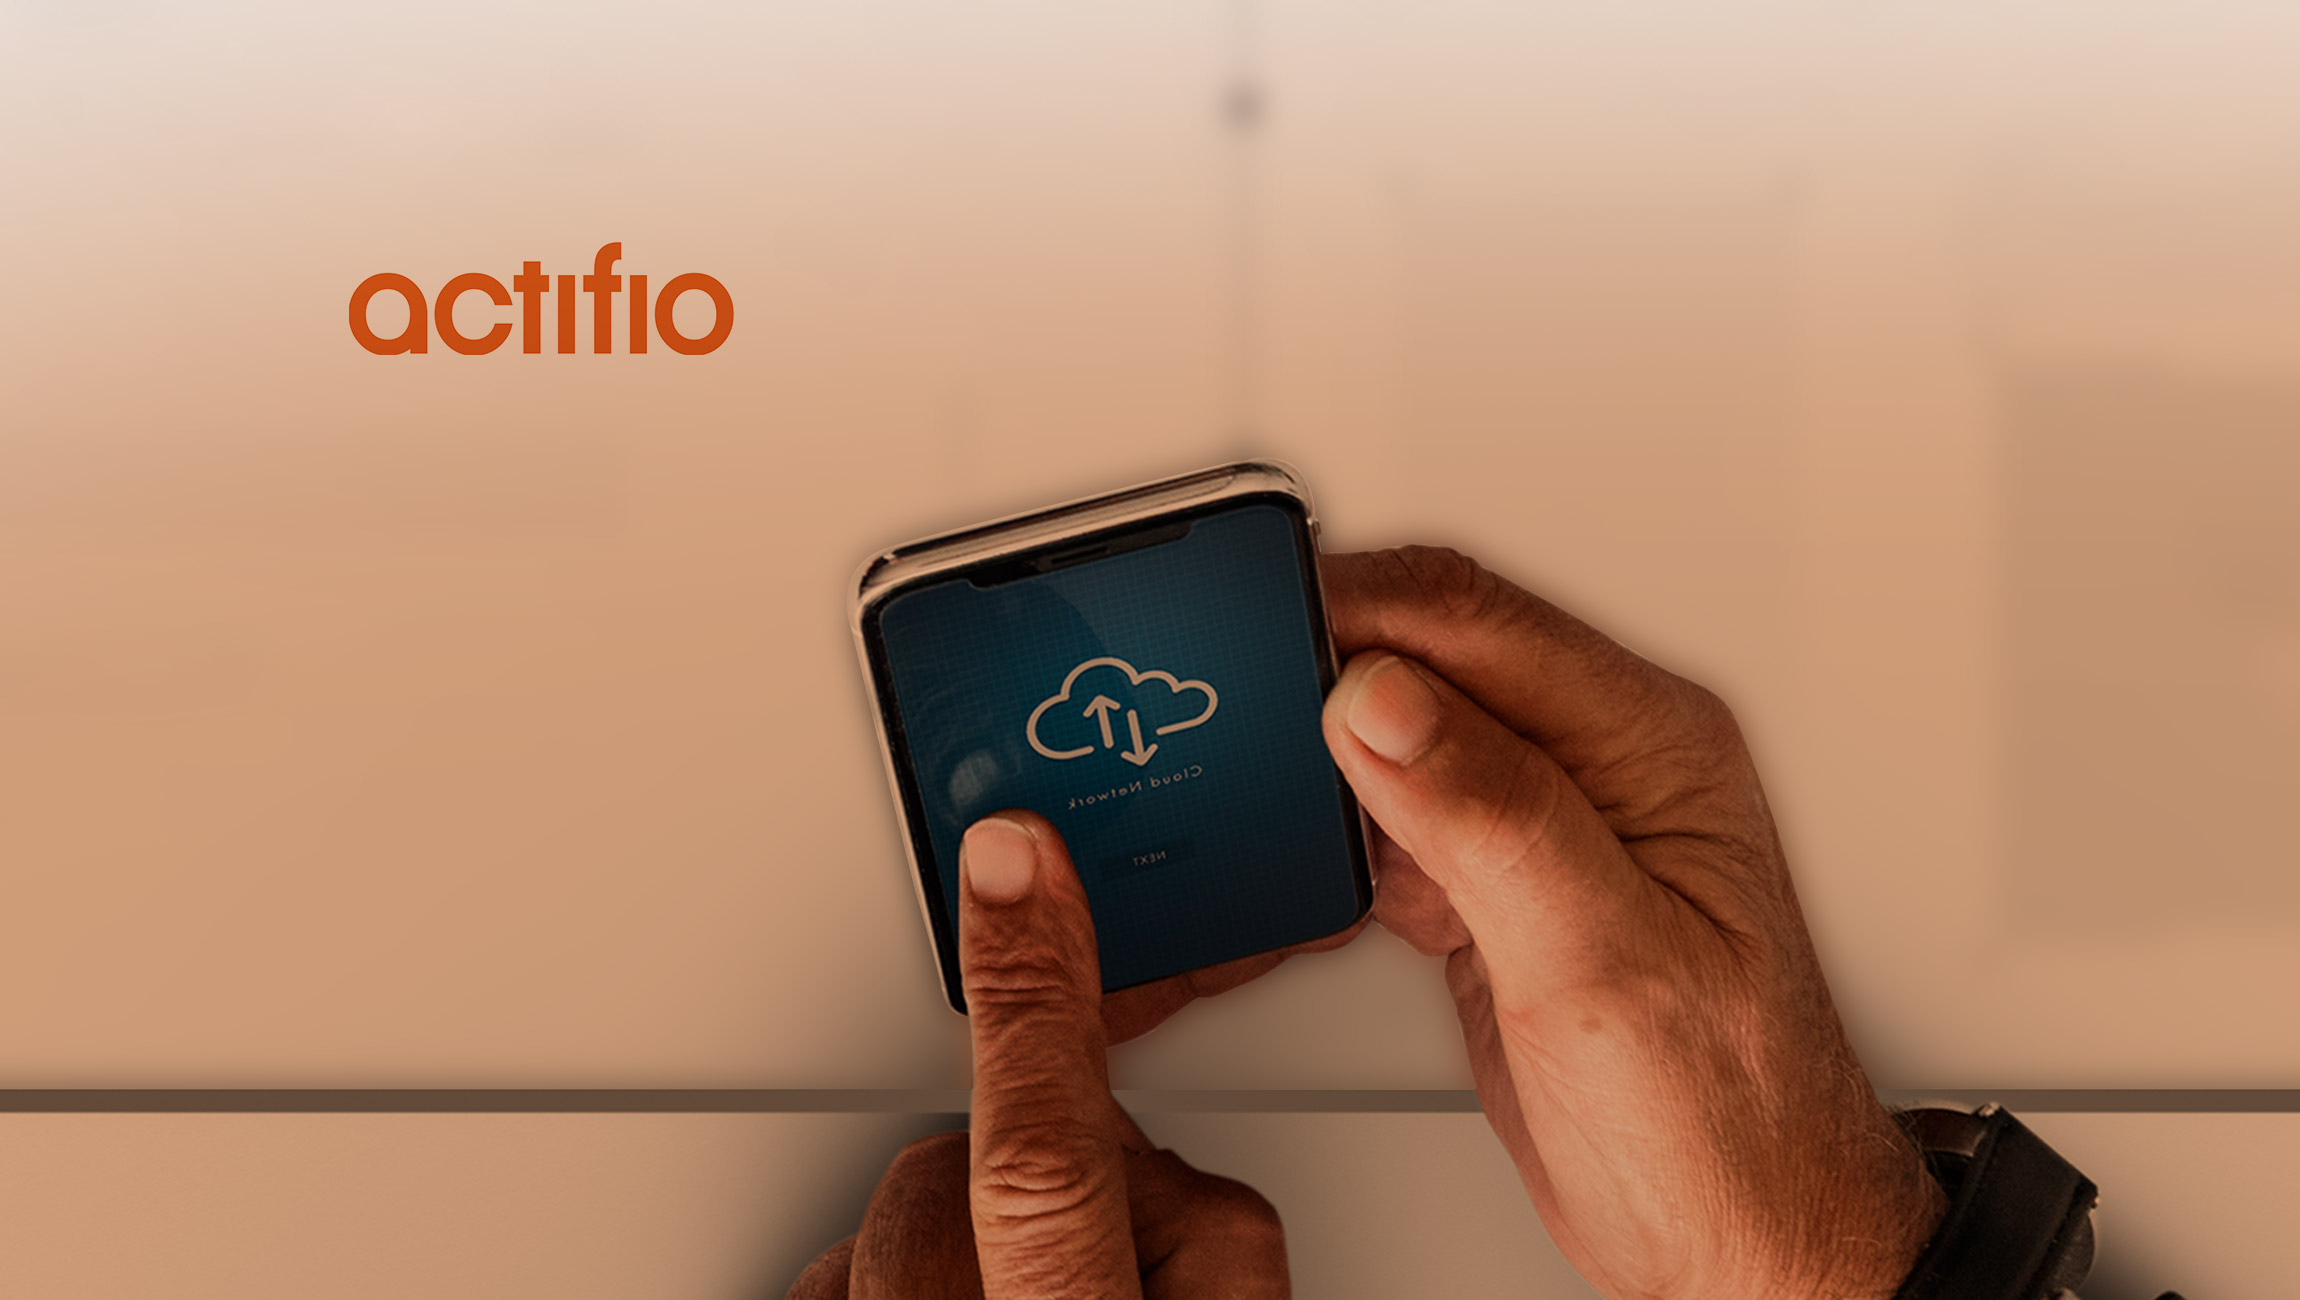 Actifio Announces Global Alliance with Tata Consultancy Services to Provide Multi-Cloud Copy Data Management Solutions for Data-Driven Enterprises